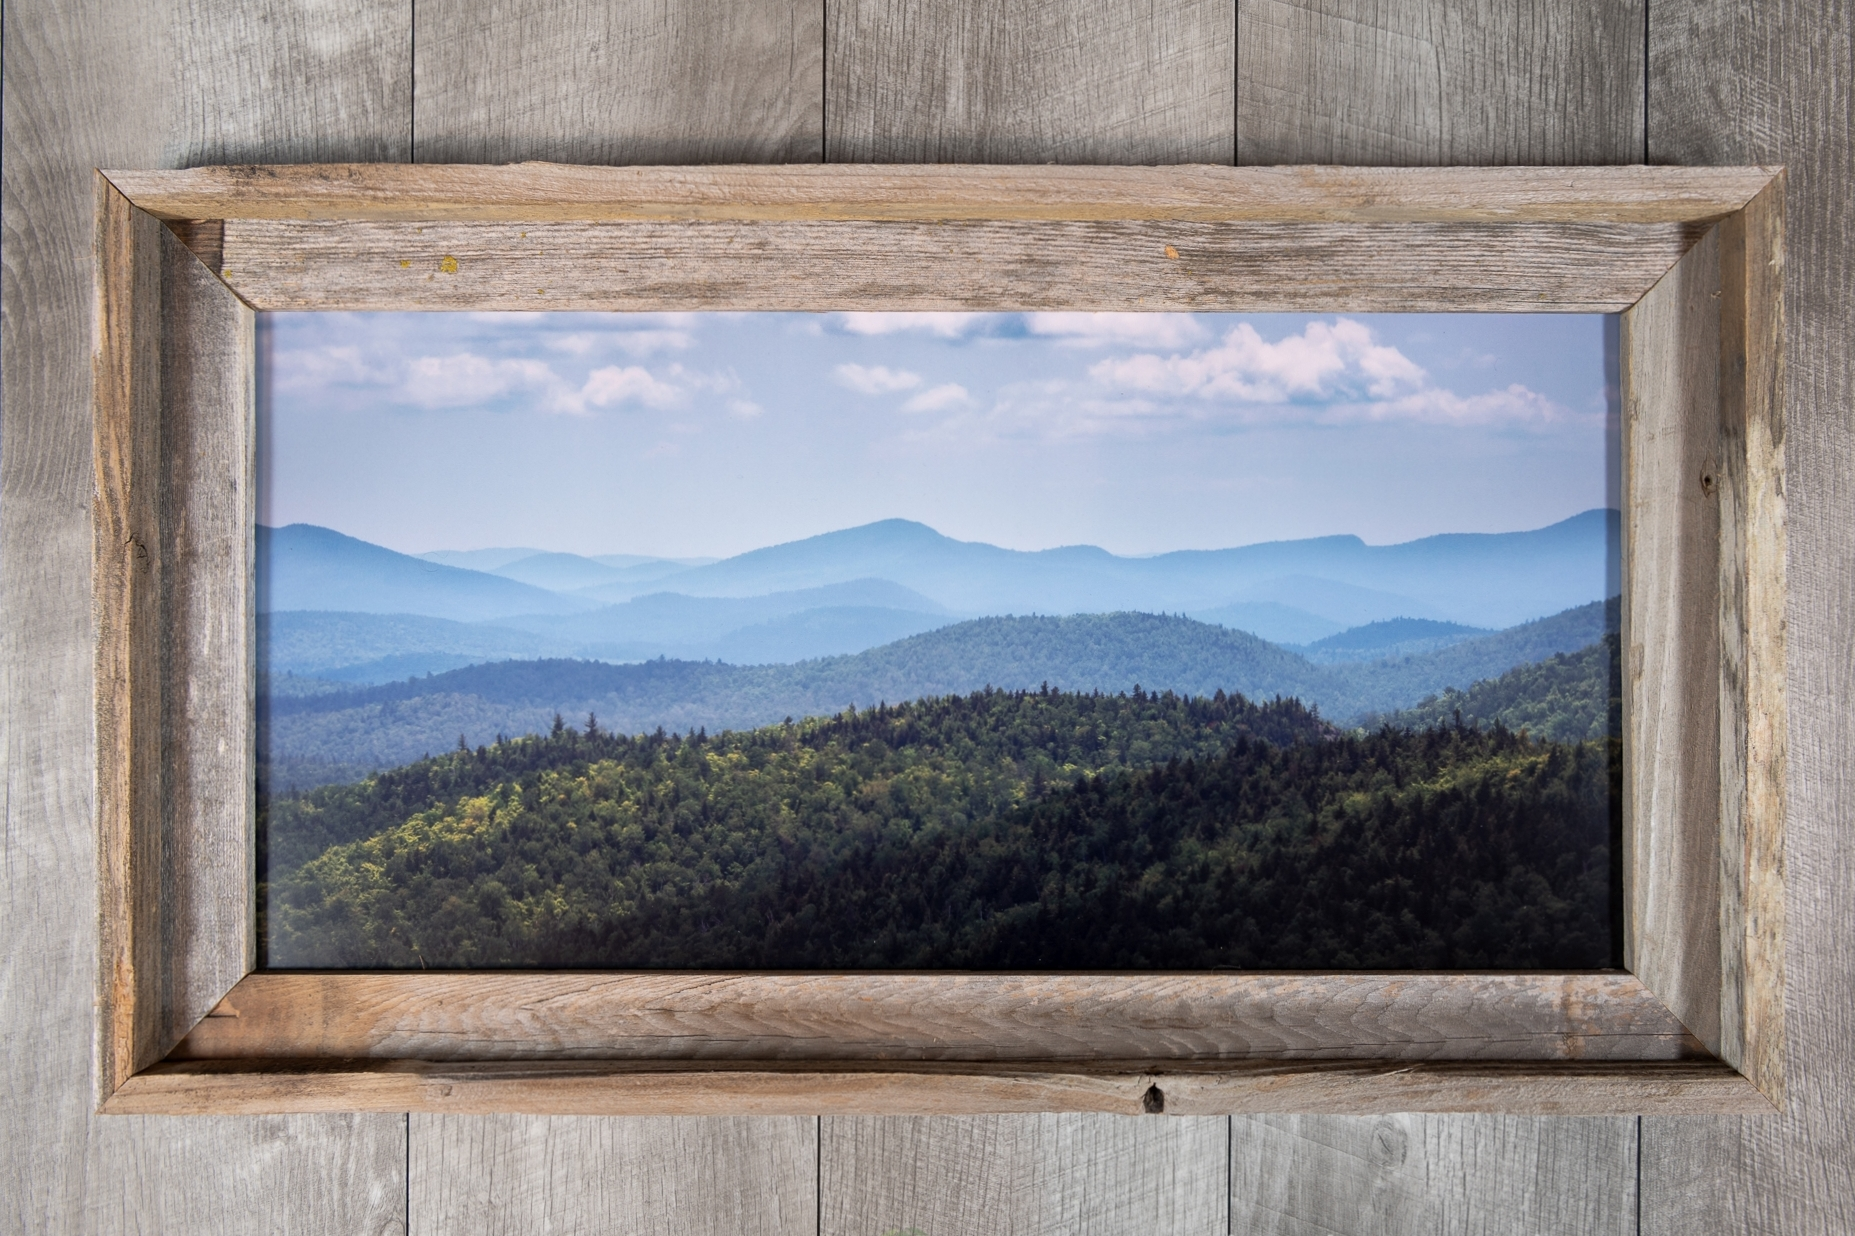 Limited edition photographs framed in 100% recycled barnwood that also give back to nature!